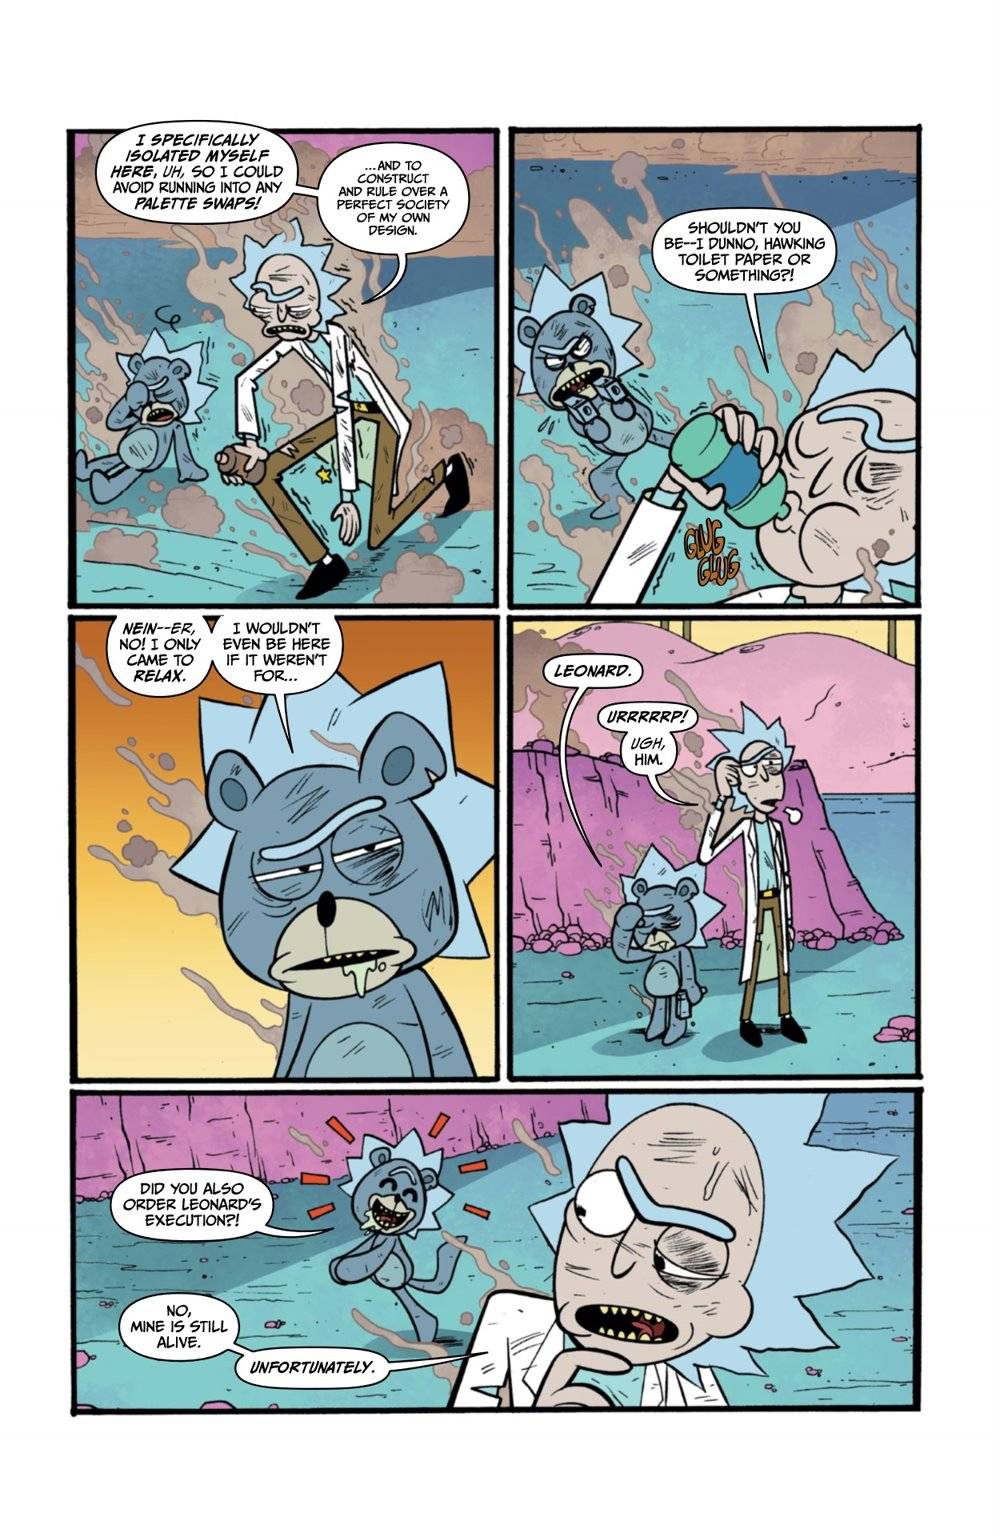 RICKMORTY-WORLDSAPART-2-REFERENCE-07 ComicList Previews: RICK AND MORTY WORLDS APART #2